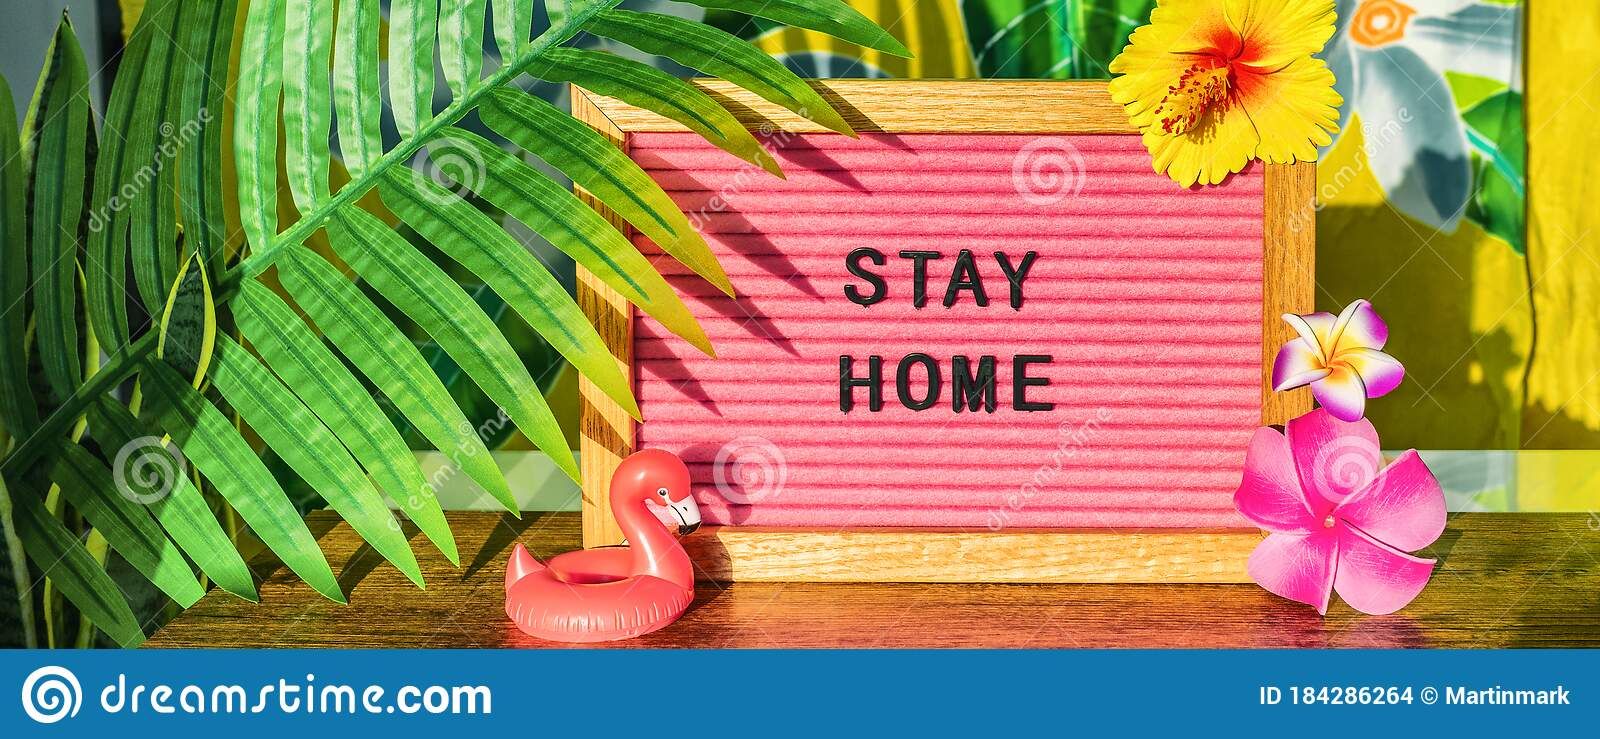 Stay Home Sign For Summer Vacation Plans During Covid 19 Travel Ban Tropical Background With Palm Leaves Flowers Stock Photo Image Of Flowers Billboard 184286264